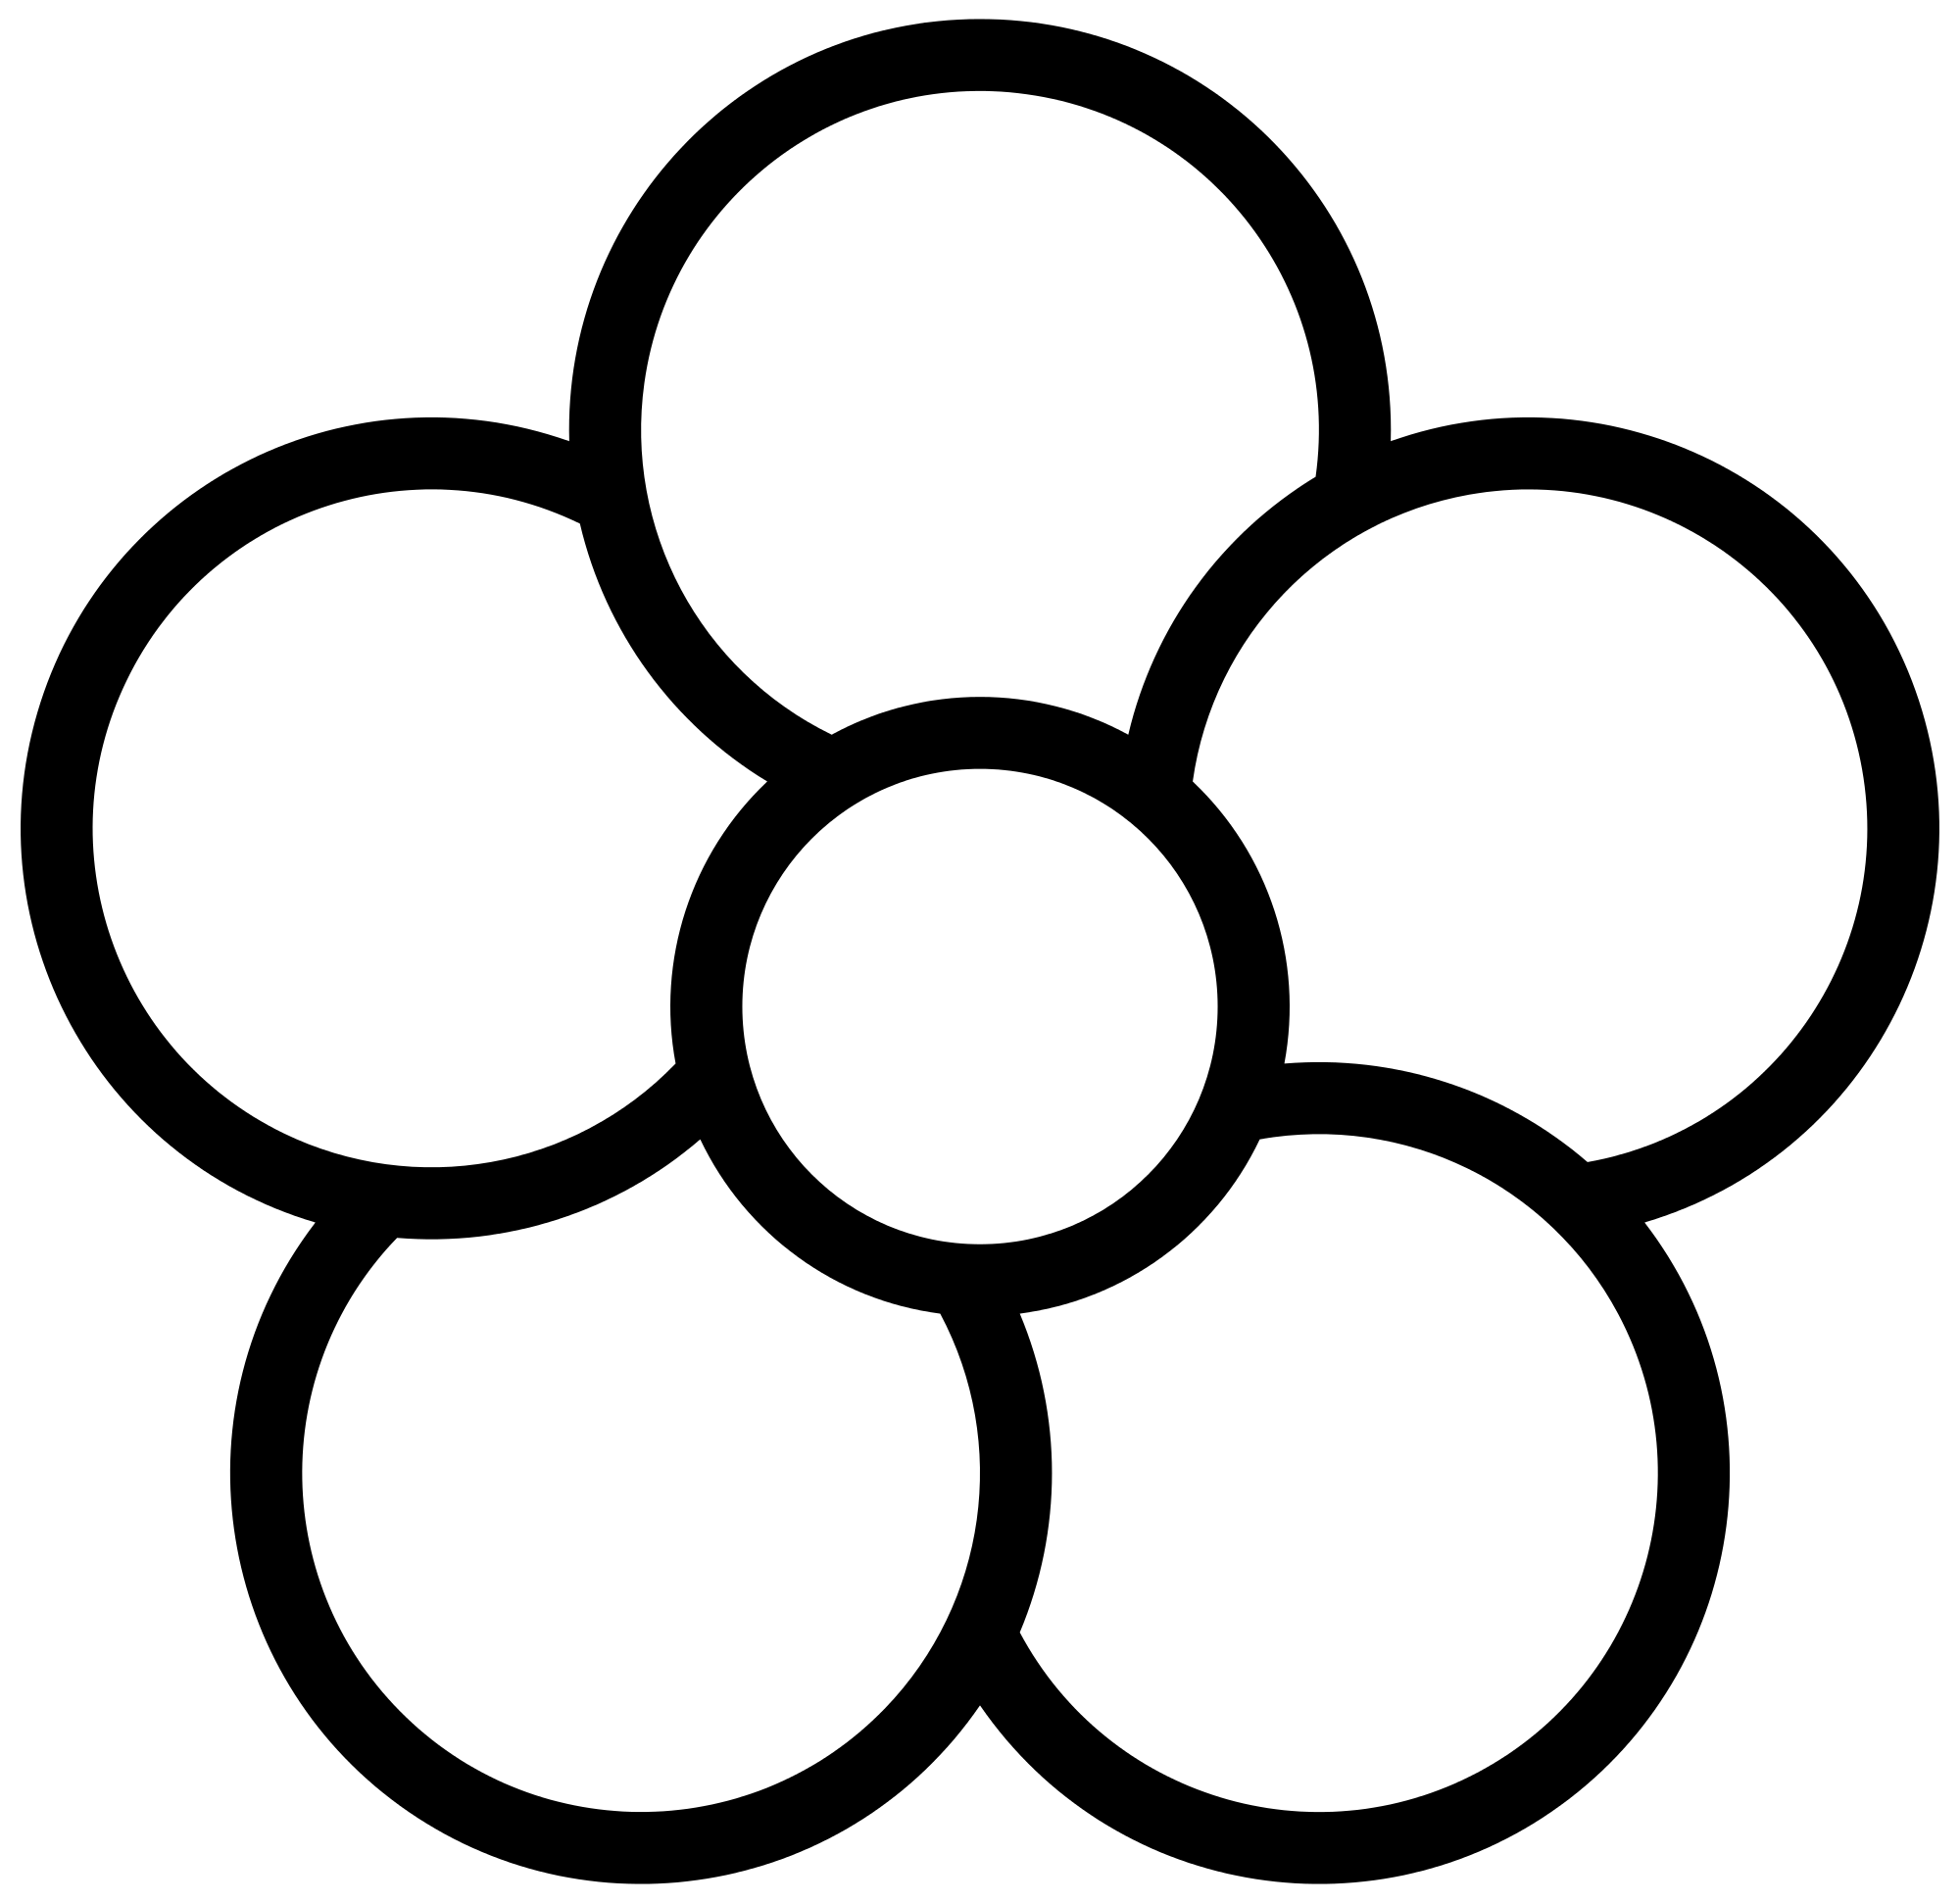 5 petal flower png. File five icon white